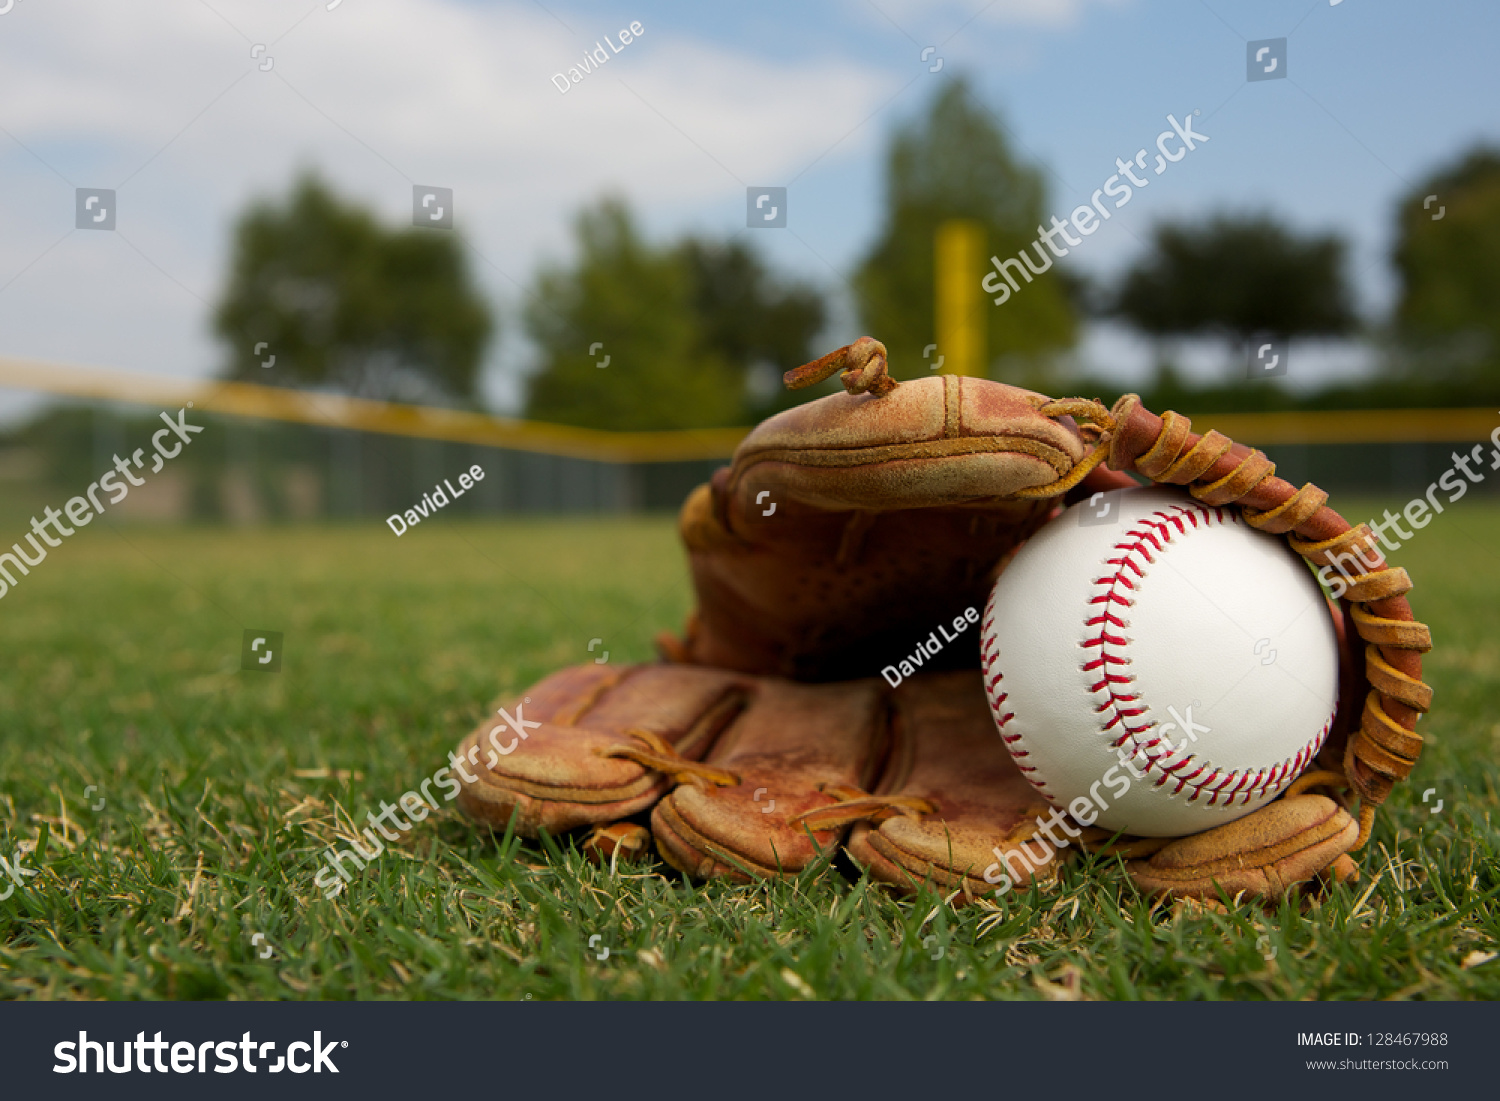 New Baseball in a Glove in the Outfield #128467988